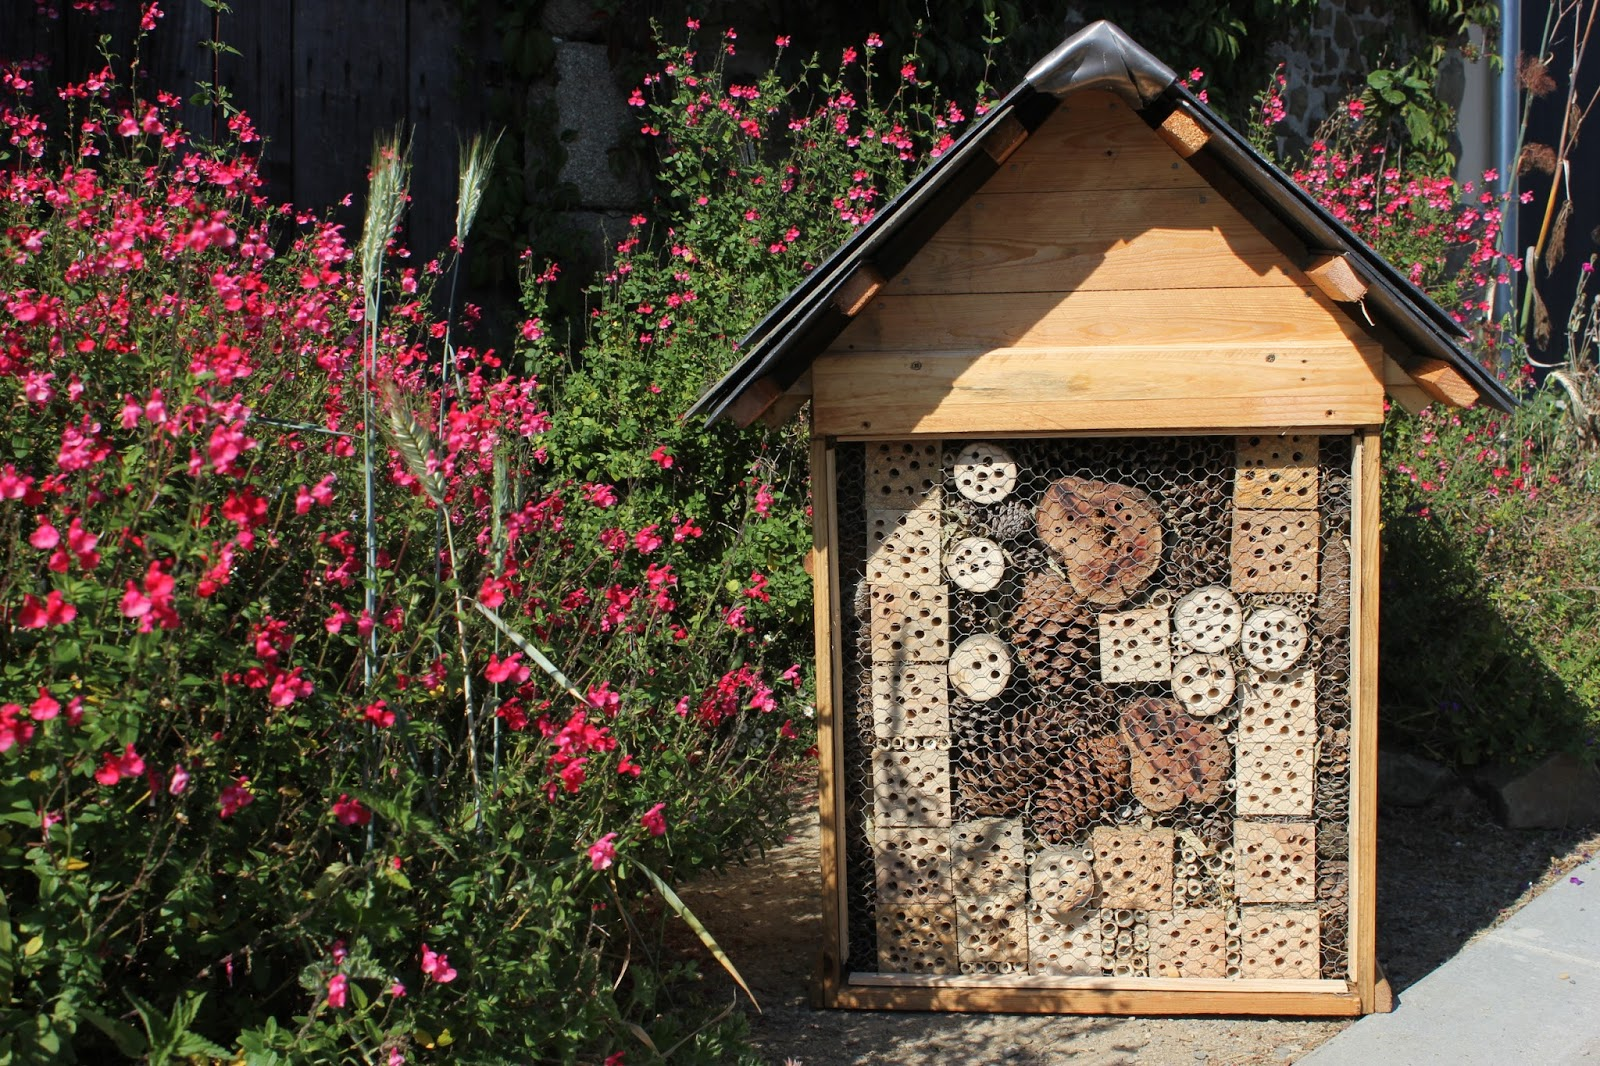 Insect hotel for camouflaging an eyesore